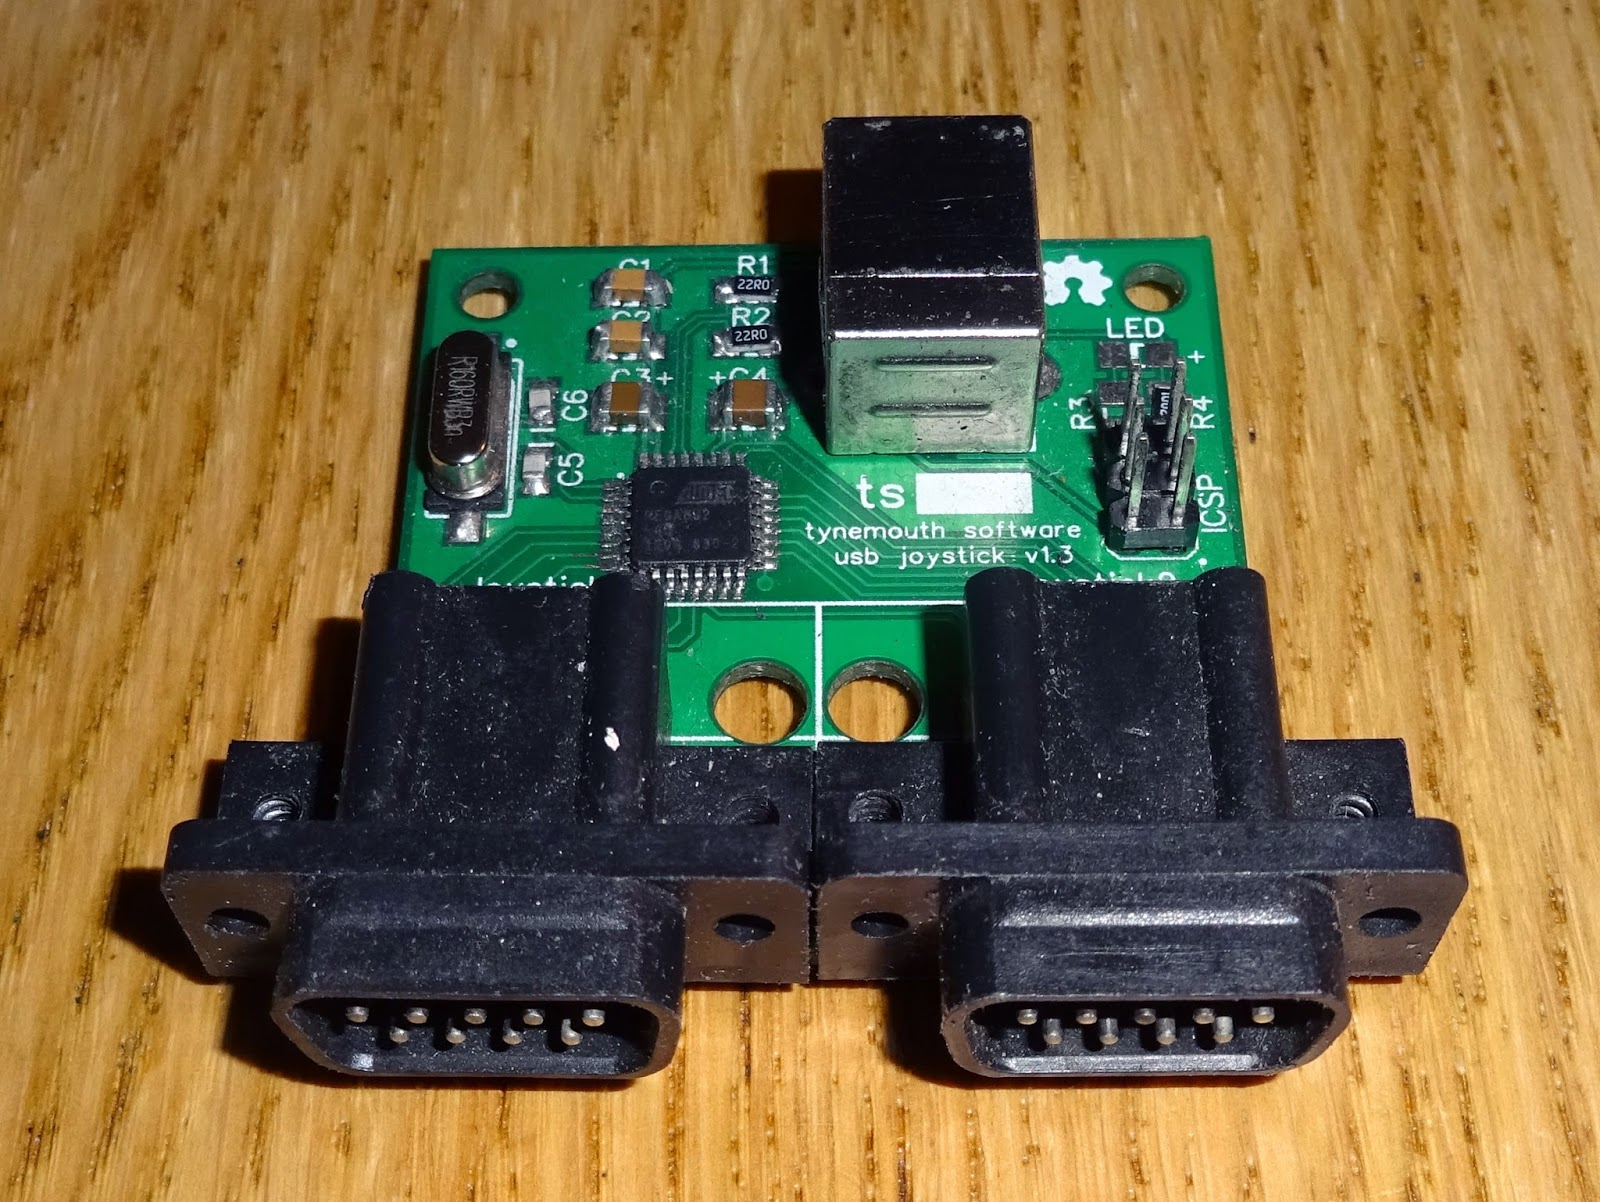 Tynemouth Software Atari Commodore 9 Way D Usb Joystick Adapter Circuit Board Connector A While Ago I Designed Which Allows You To Plug In One Or Two Style Joysticks And Use Them On Pc Pi With Modern Games